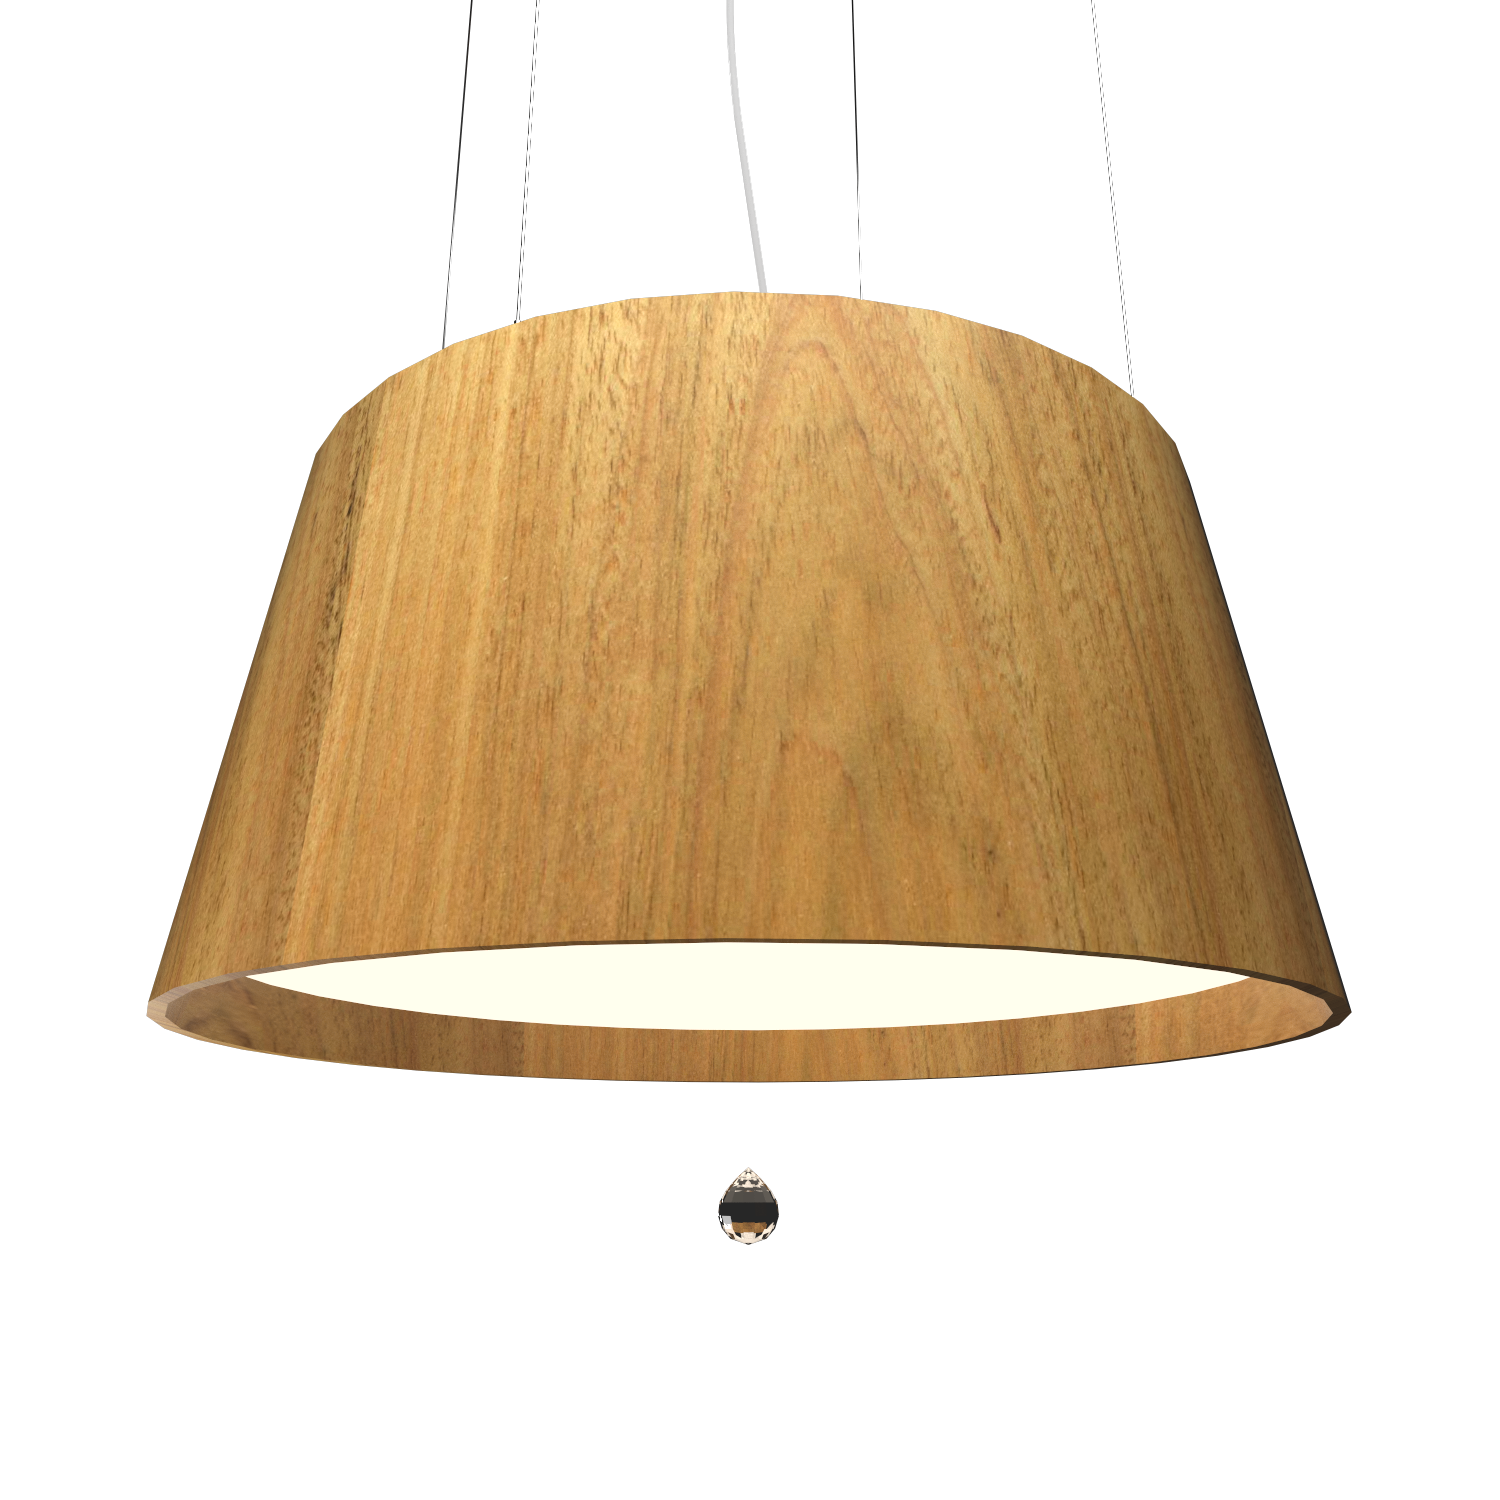 Pendant Lamp Conical with Crystal 255C - Cristais Line Accord Lighting | 09. Louro Freijó